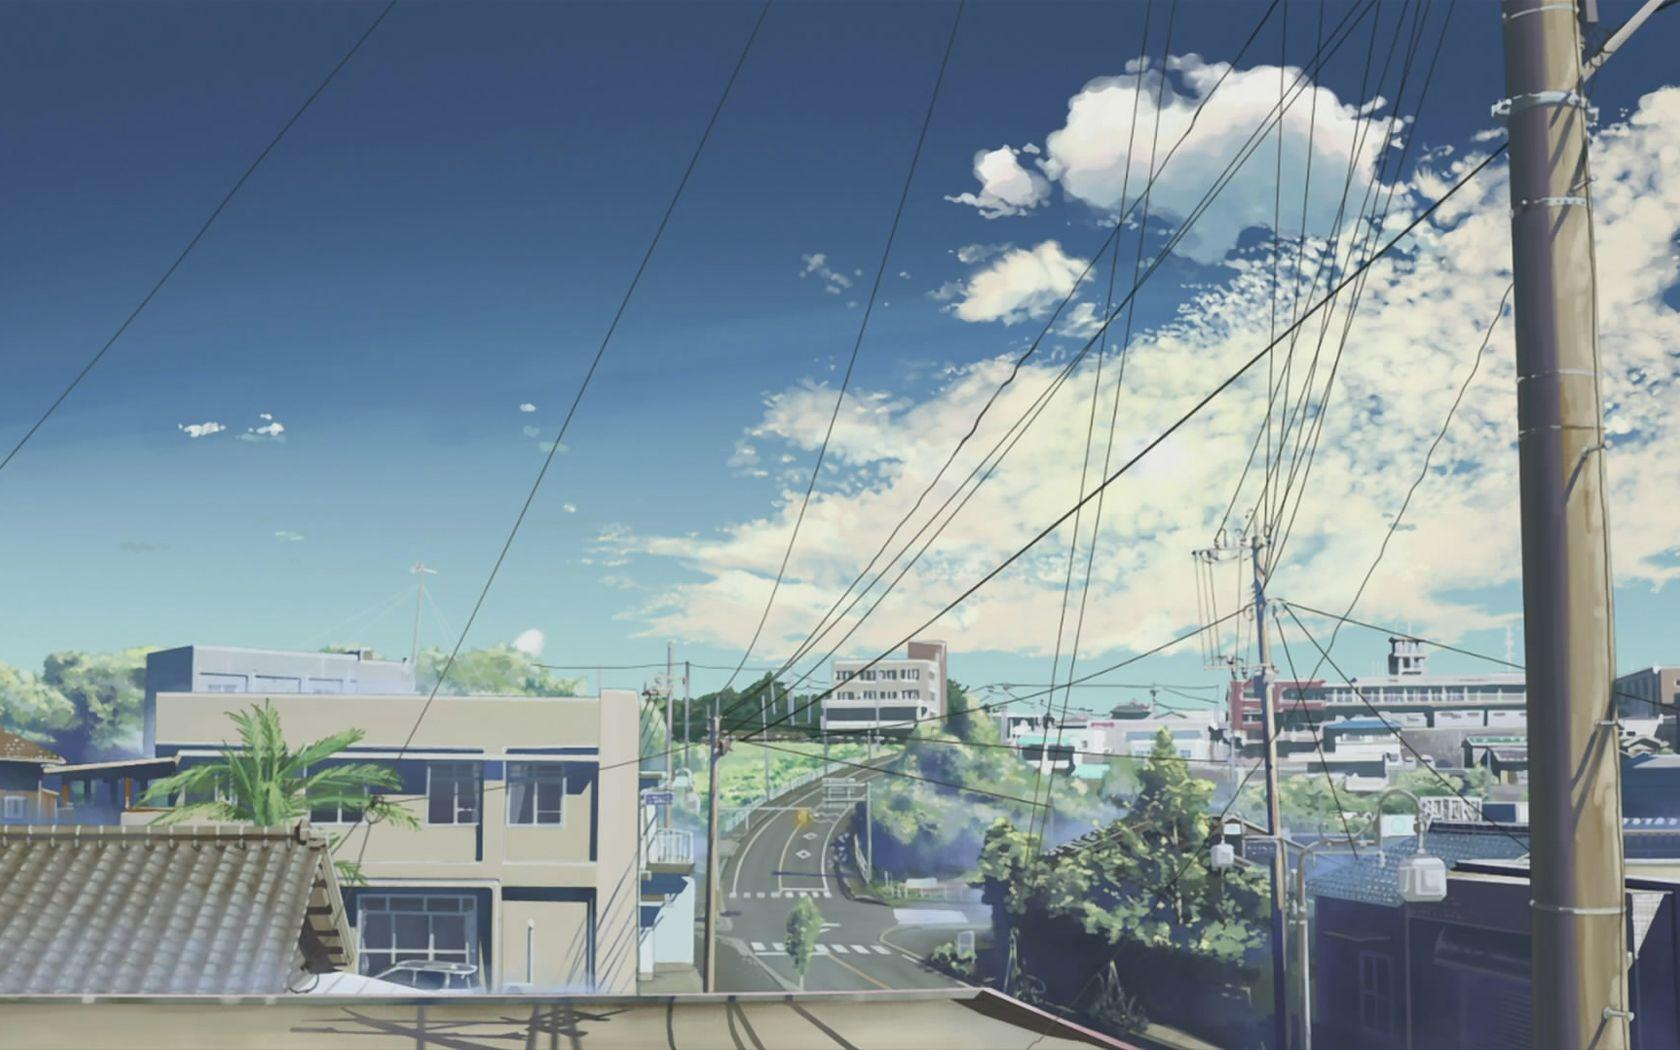 5 Centimeters Per Second Wallpapers and Backgrounds Image